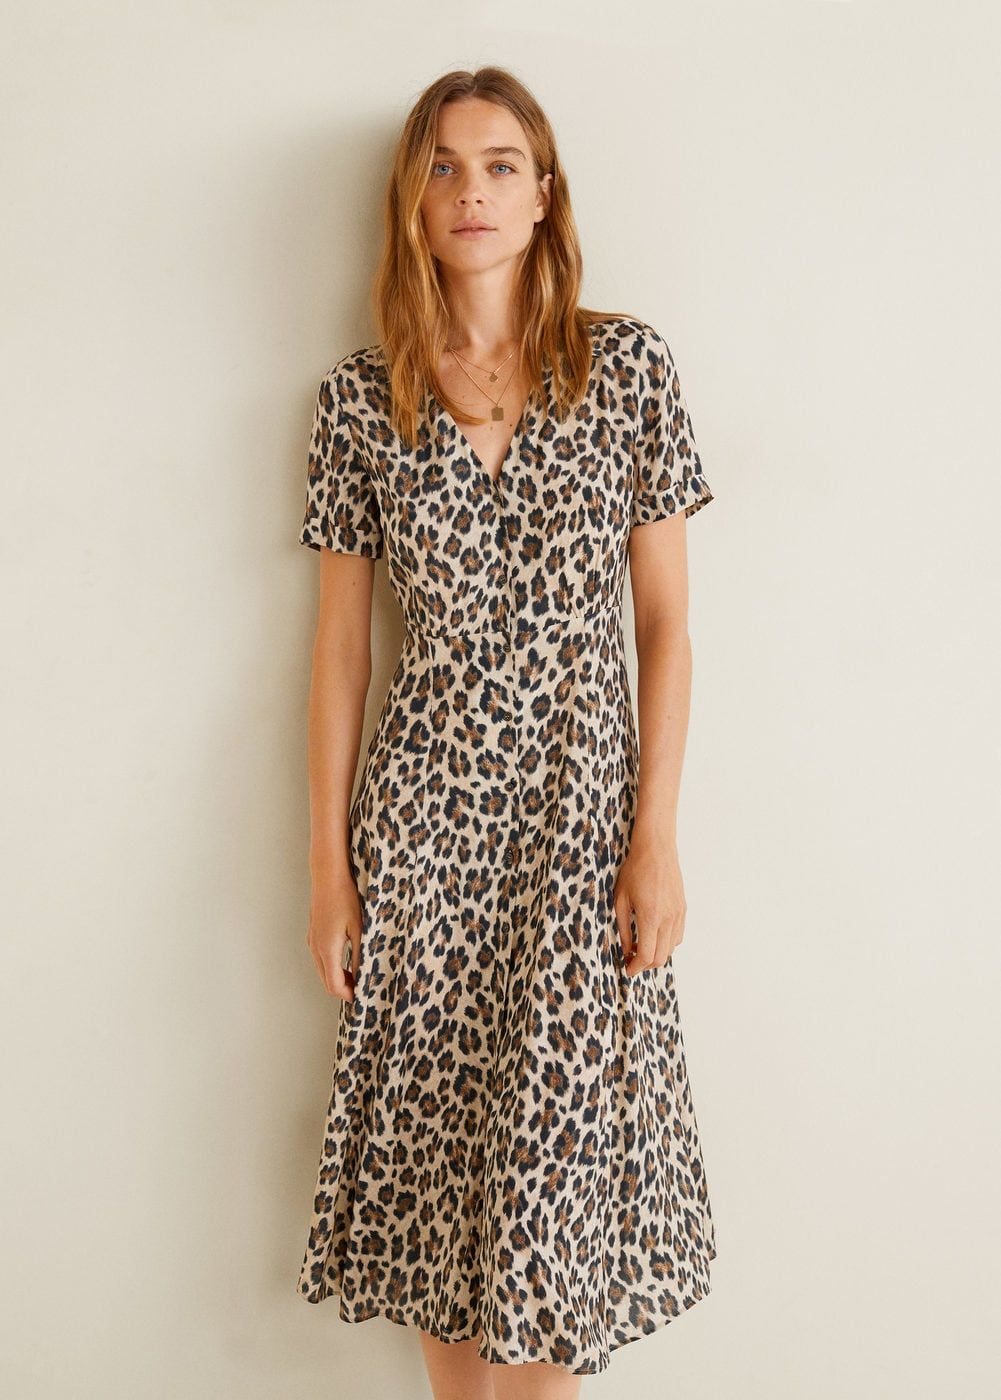 Flowy fabric Flared design Leopard print Shirt-style collar Short sleeve  with turnover Fitted waist Button fastening on the front section 767bafaa7